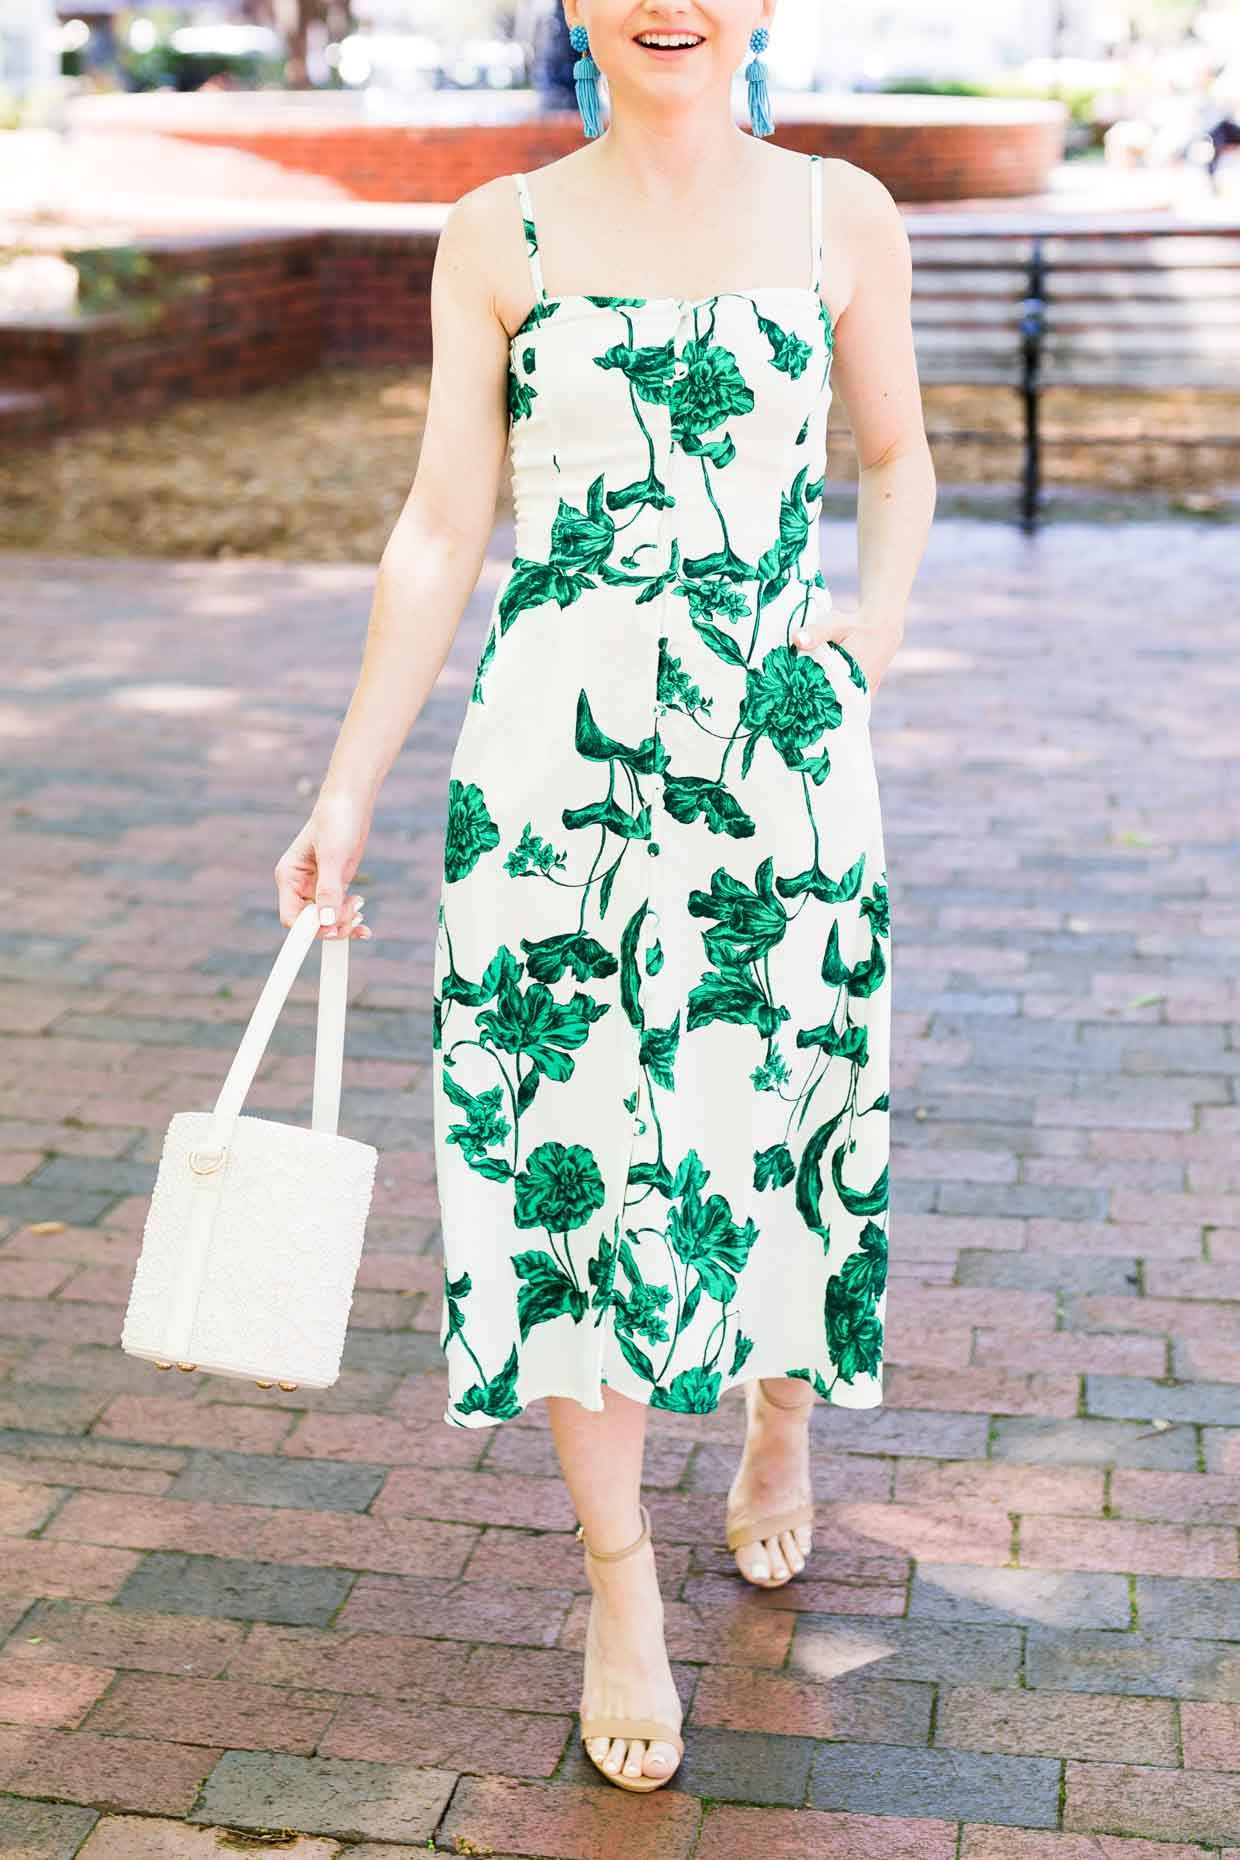 Turquoise Earrings And A Green Floral Print Dress Poor Little It Girl Fashion Green Floral Print Dress Summer Outfits Women [ 1860 x 1240 Pixel ]